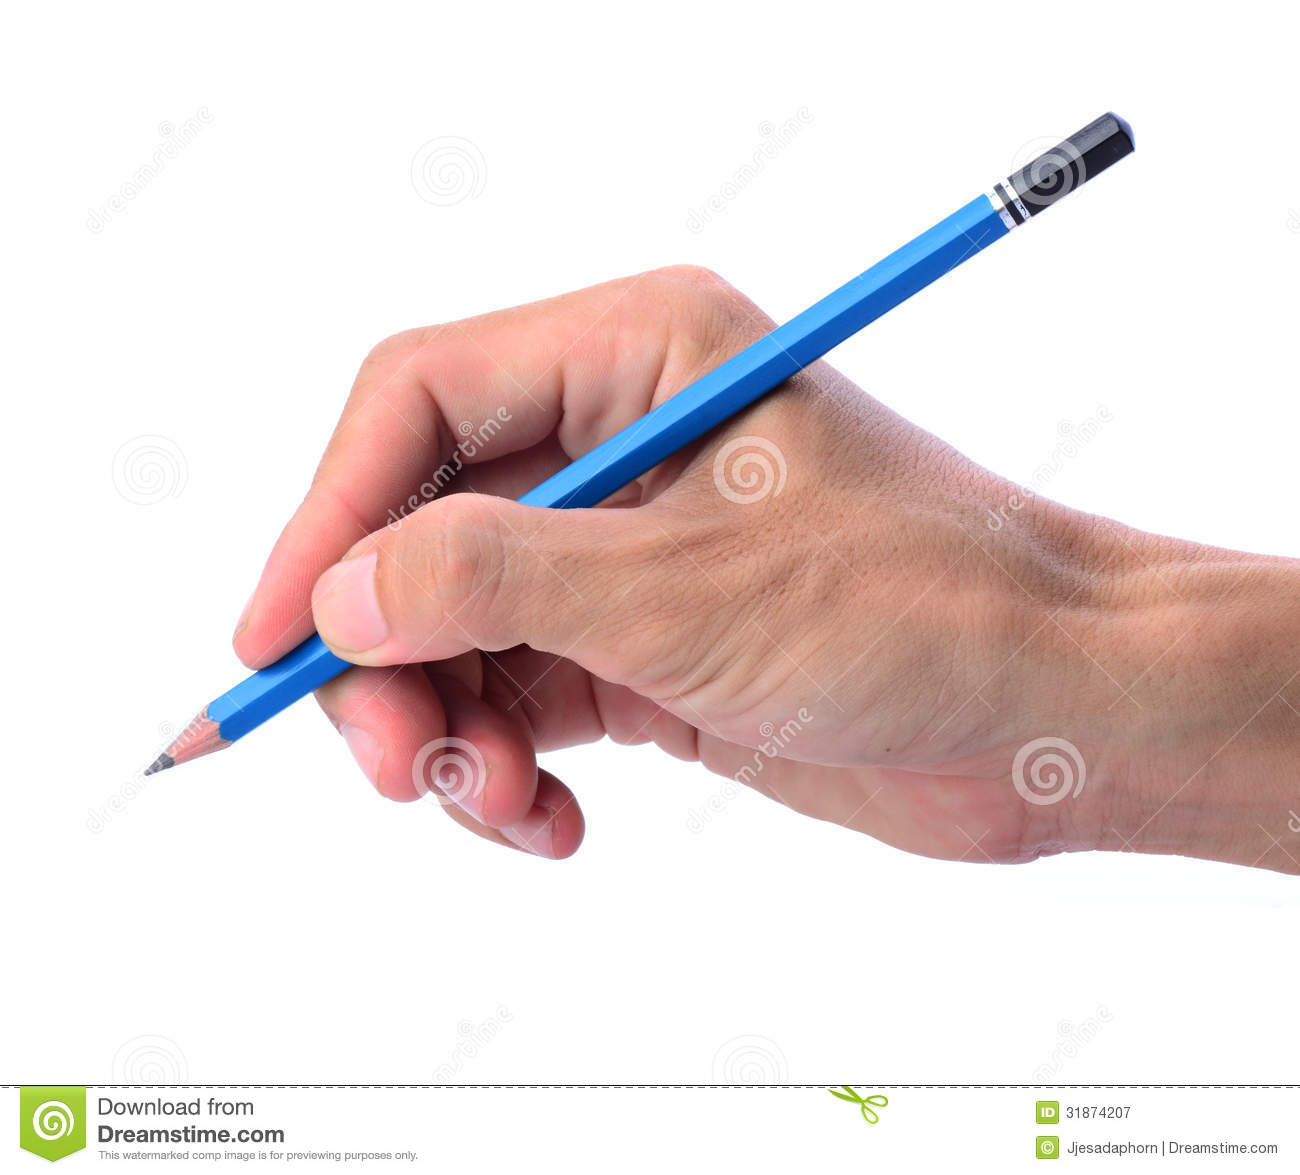 left hand writing · reader approved how to become left handed when you are right handed two parts: writing practice strength training community q&a training to becoming left.